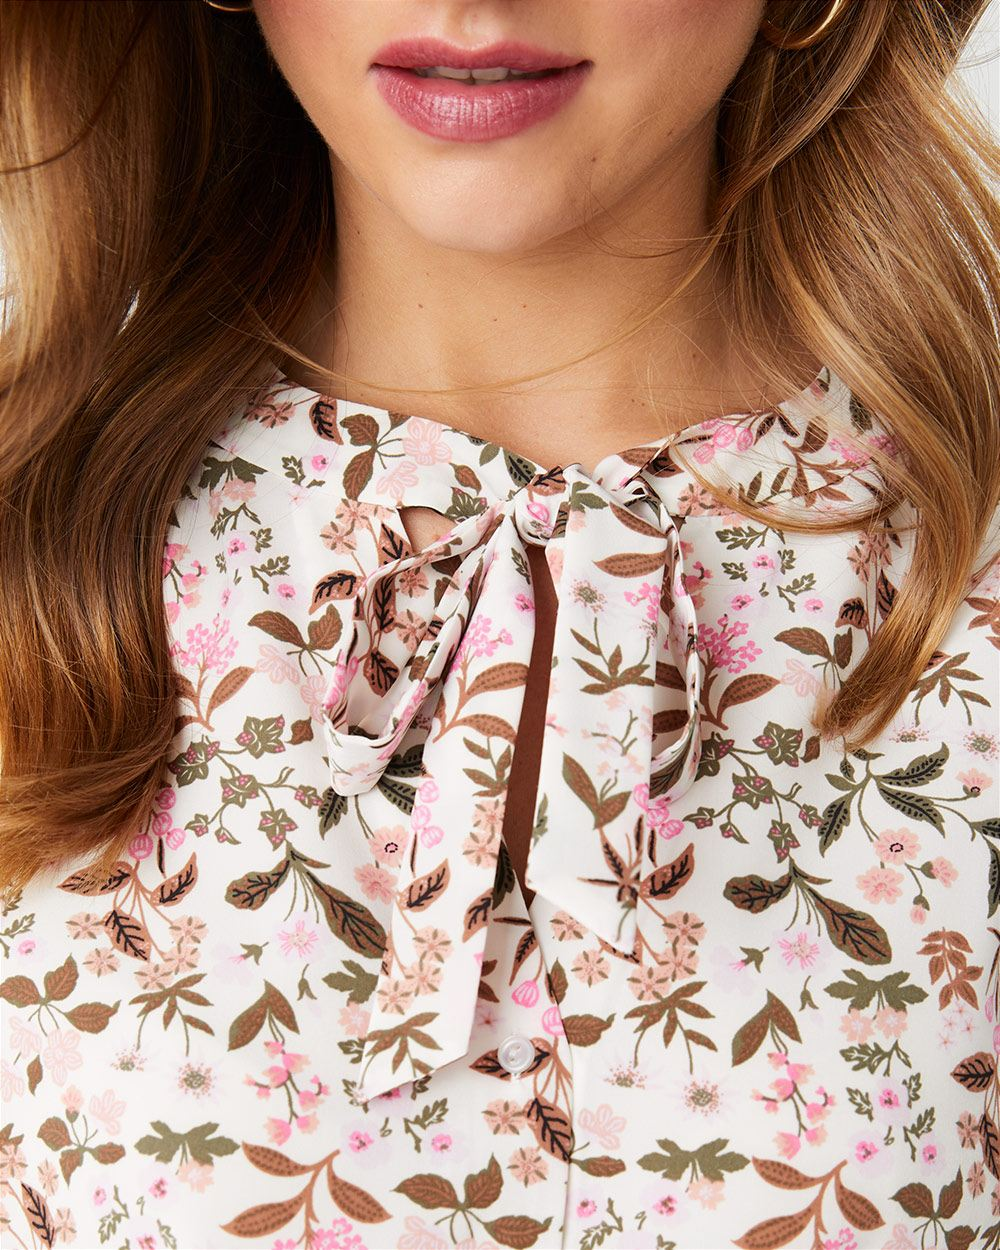 Sleveless button-front blouse with neck bow